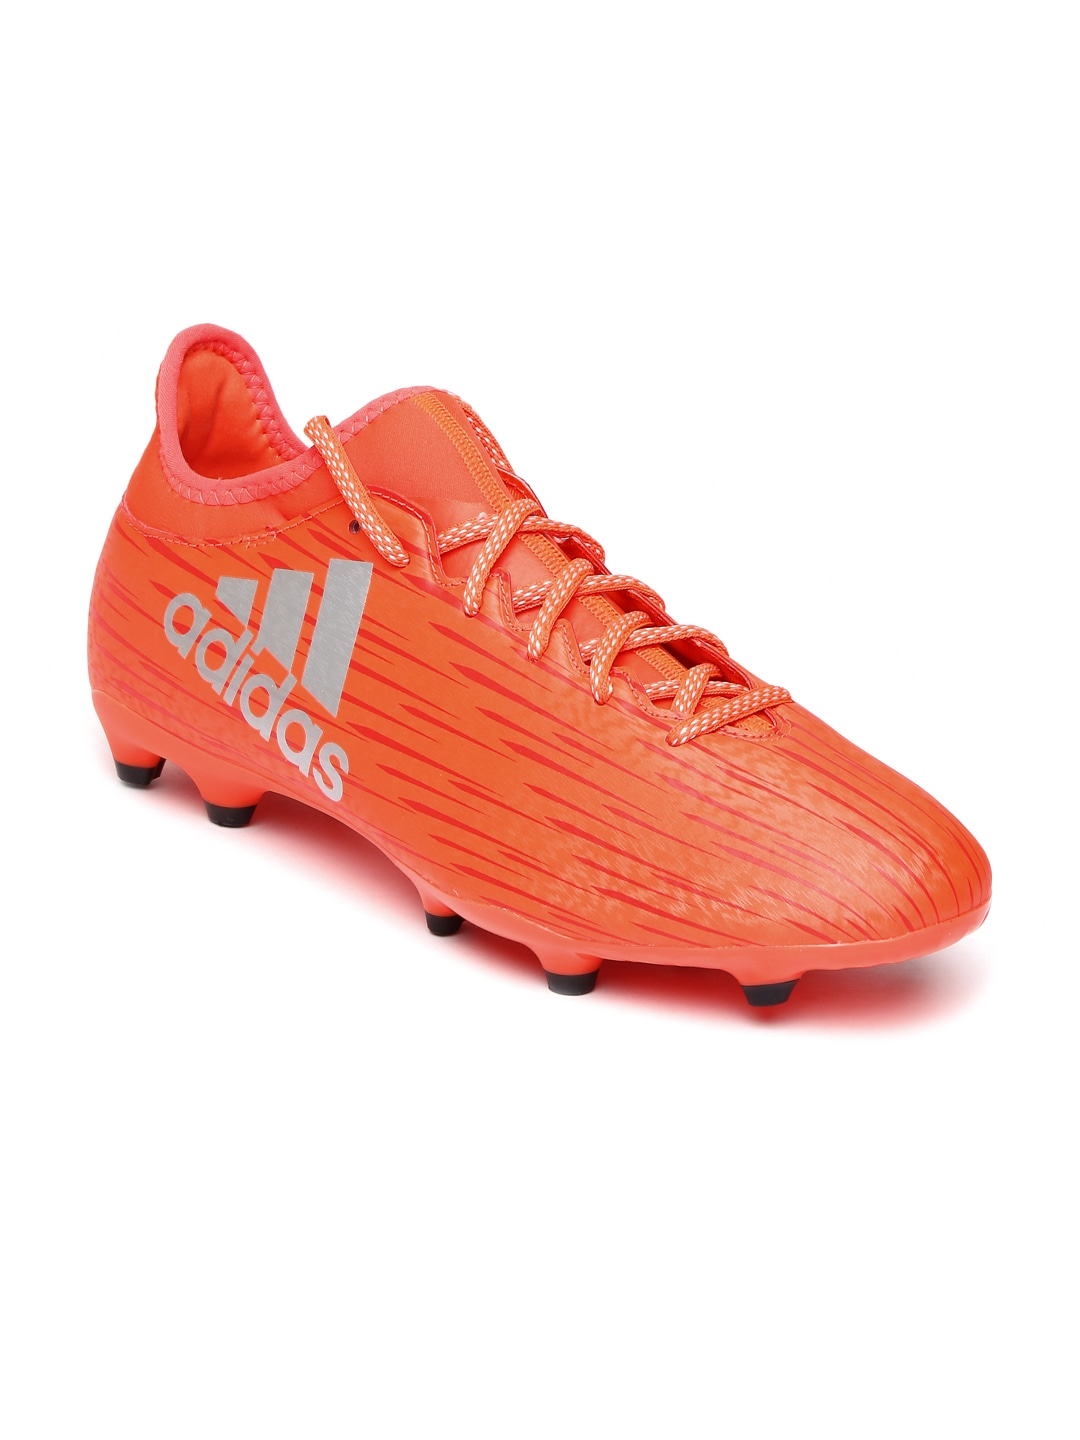 5f02ea4eaf1 Adidas s79483 Men Red Ace 16 3 Fg Football Shoes - Best Price in ...